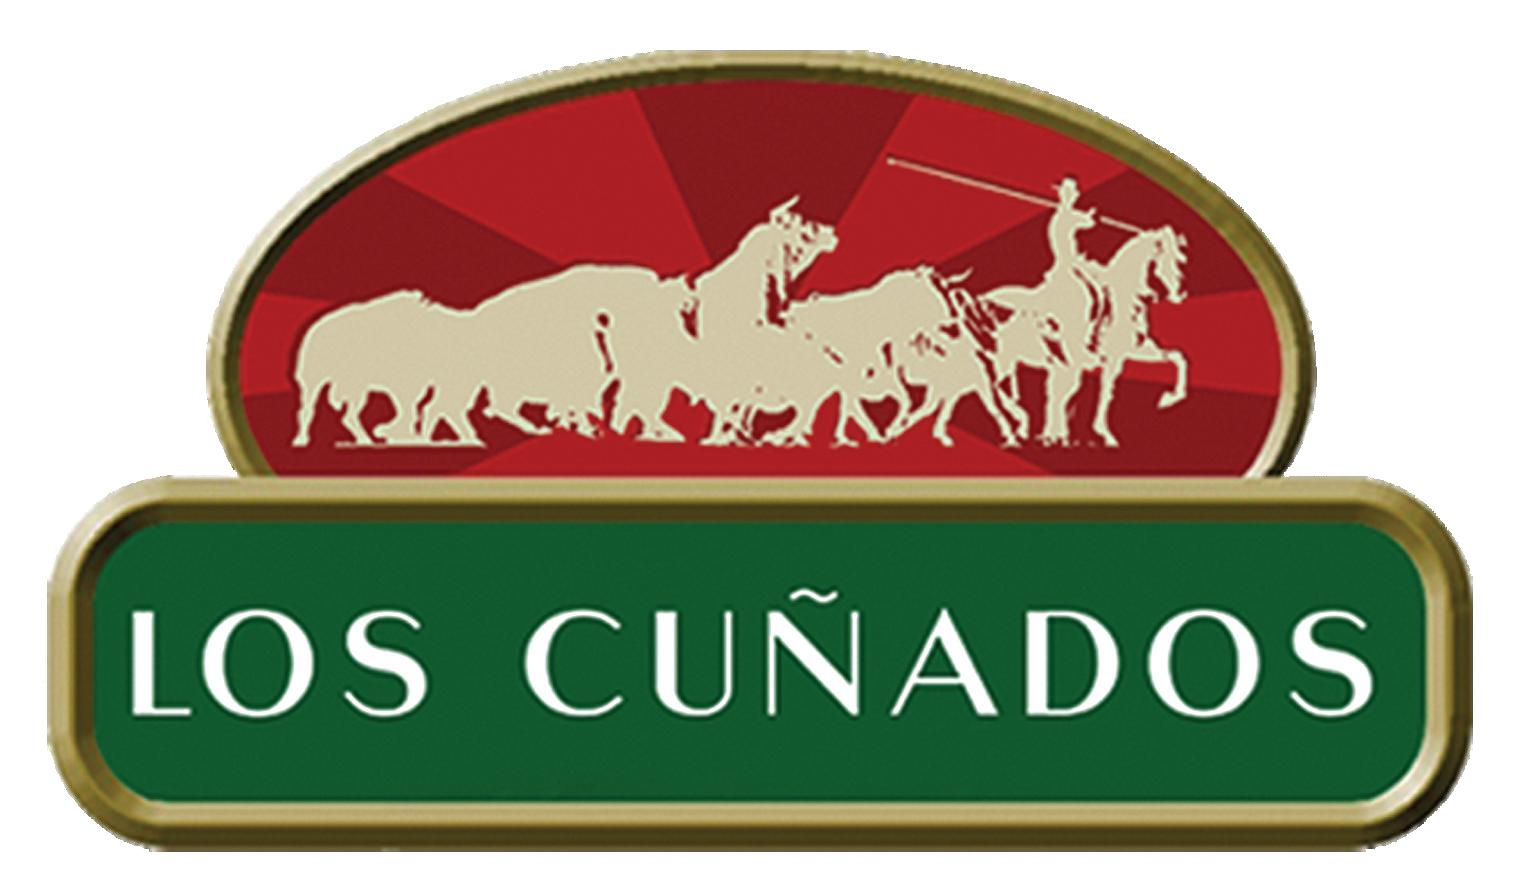 Los Cunados